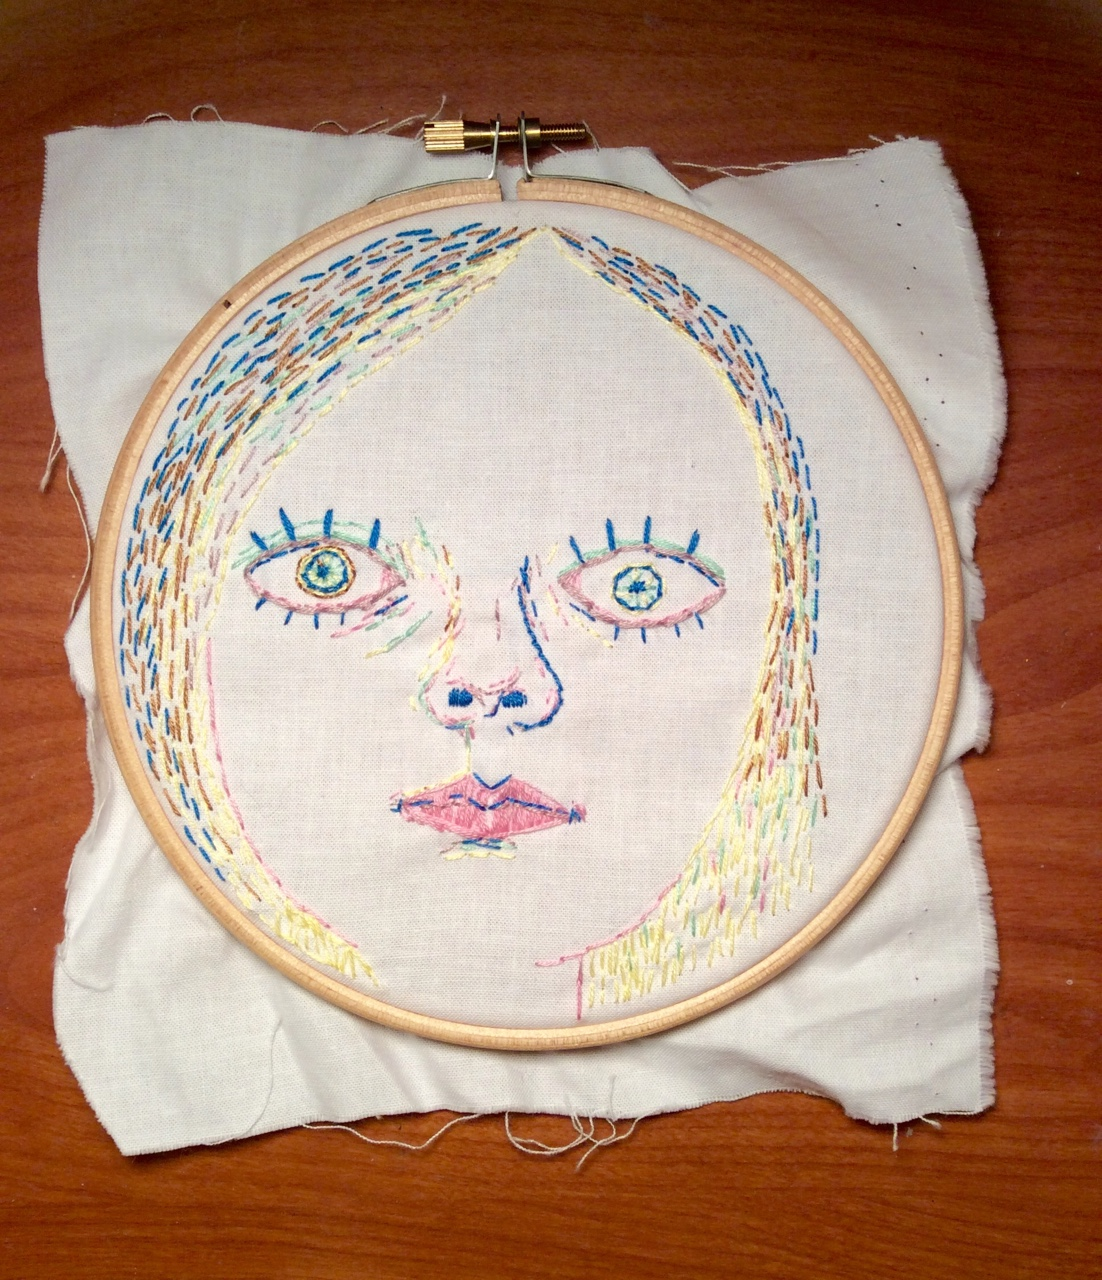 Embroidery done!